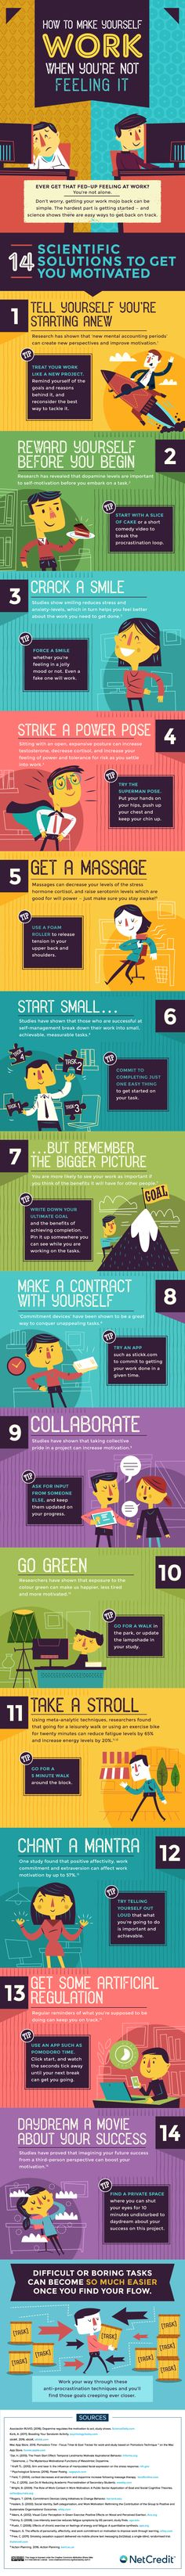 How to Make Yourself Work When You're Not Feeling It #Infographic #HowTo